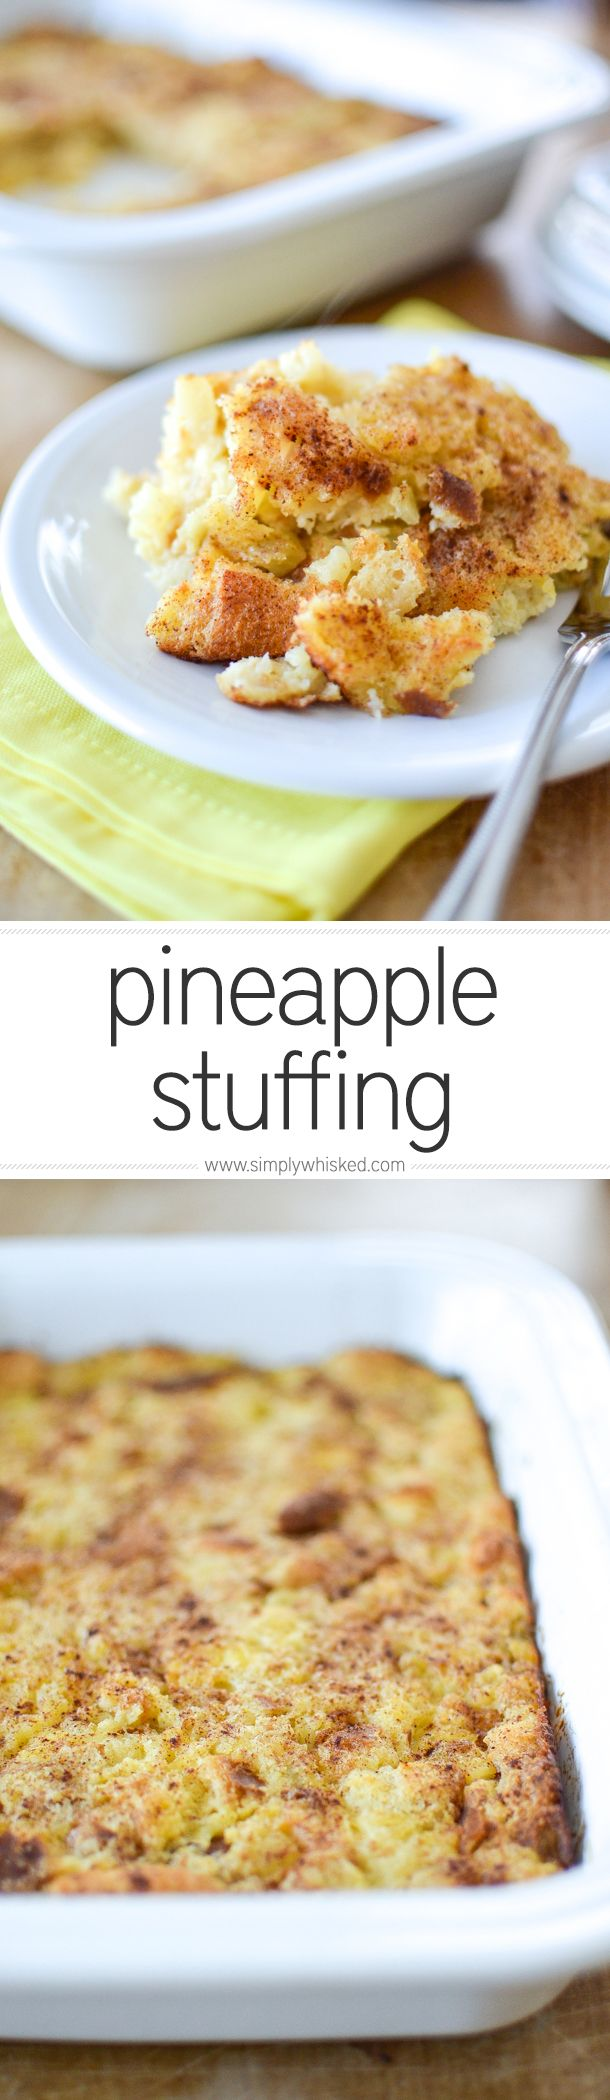 5 Ingredient Pineapple Stuffing | simplywhisked.com